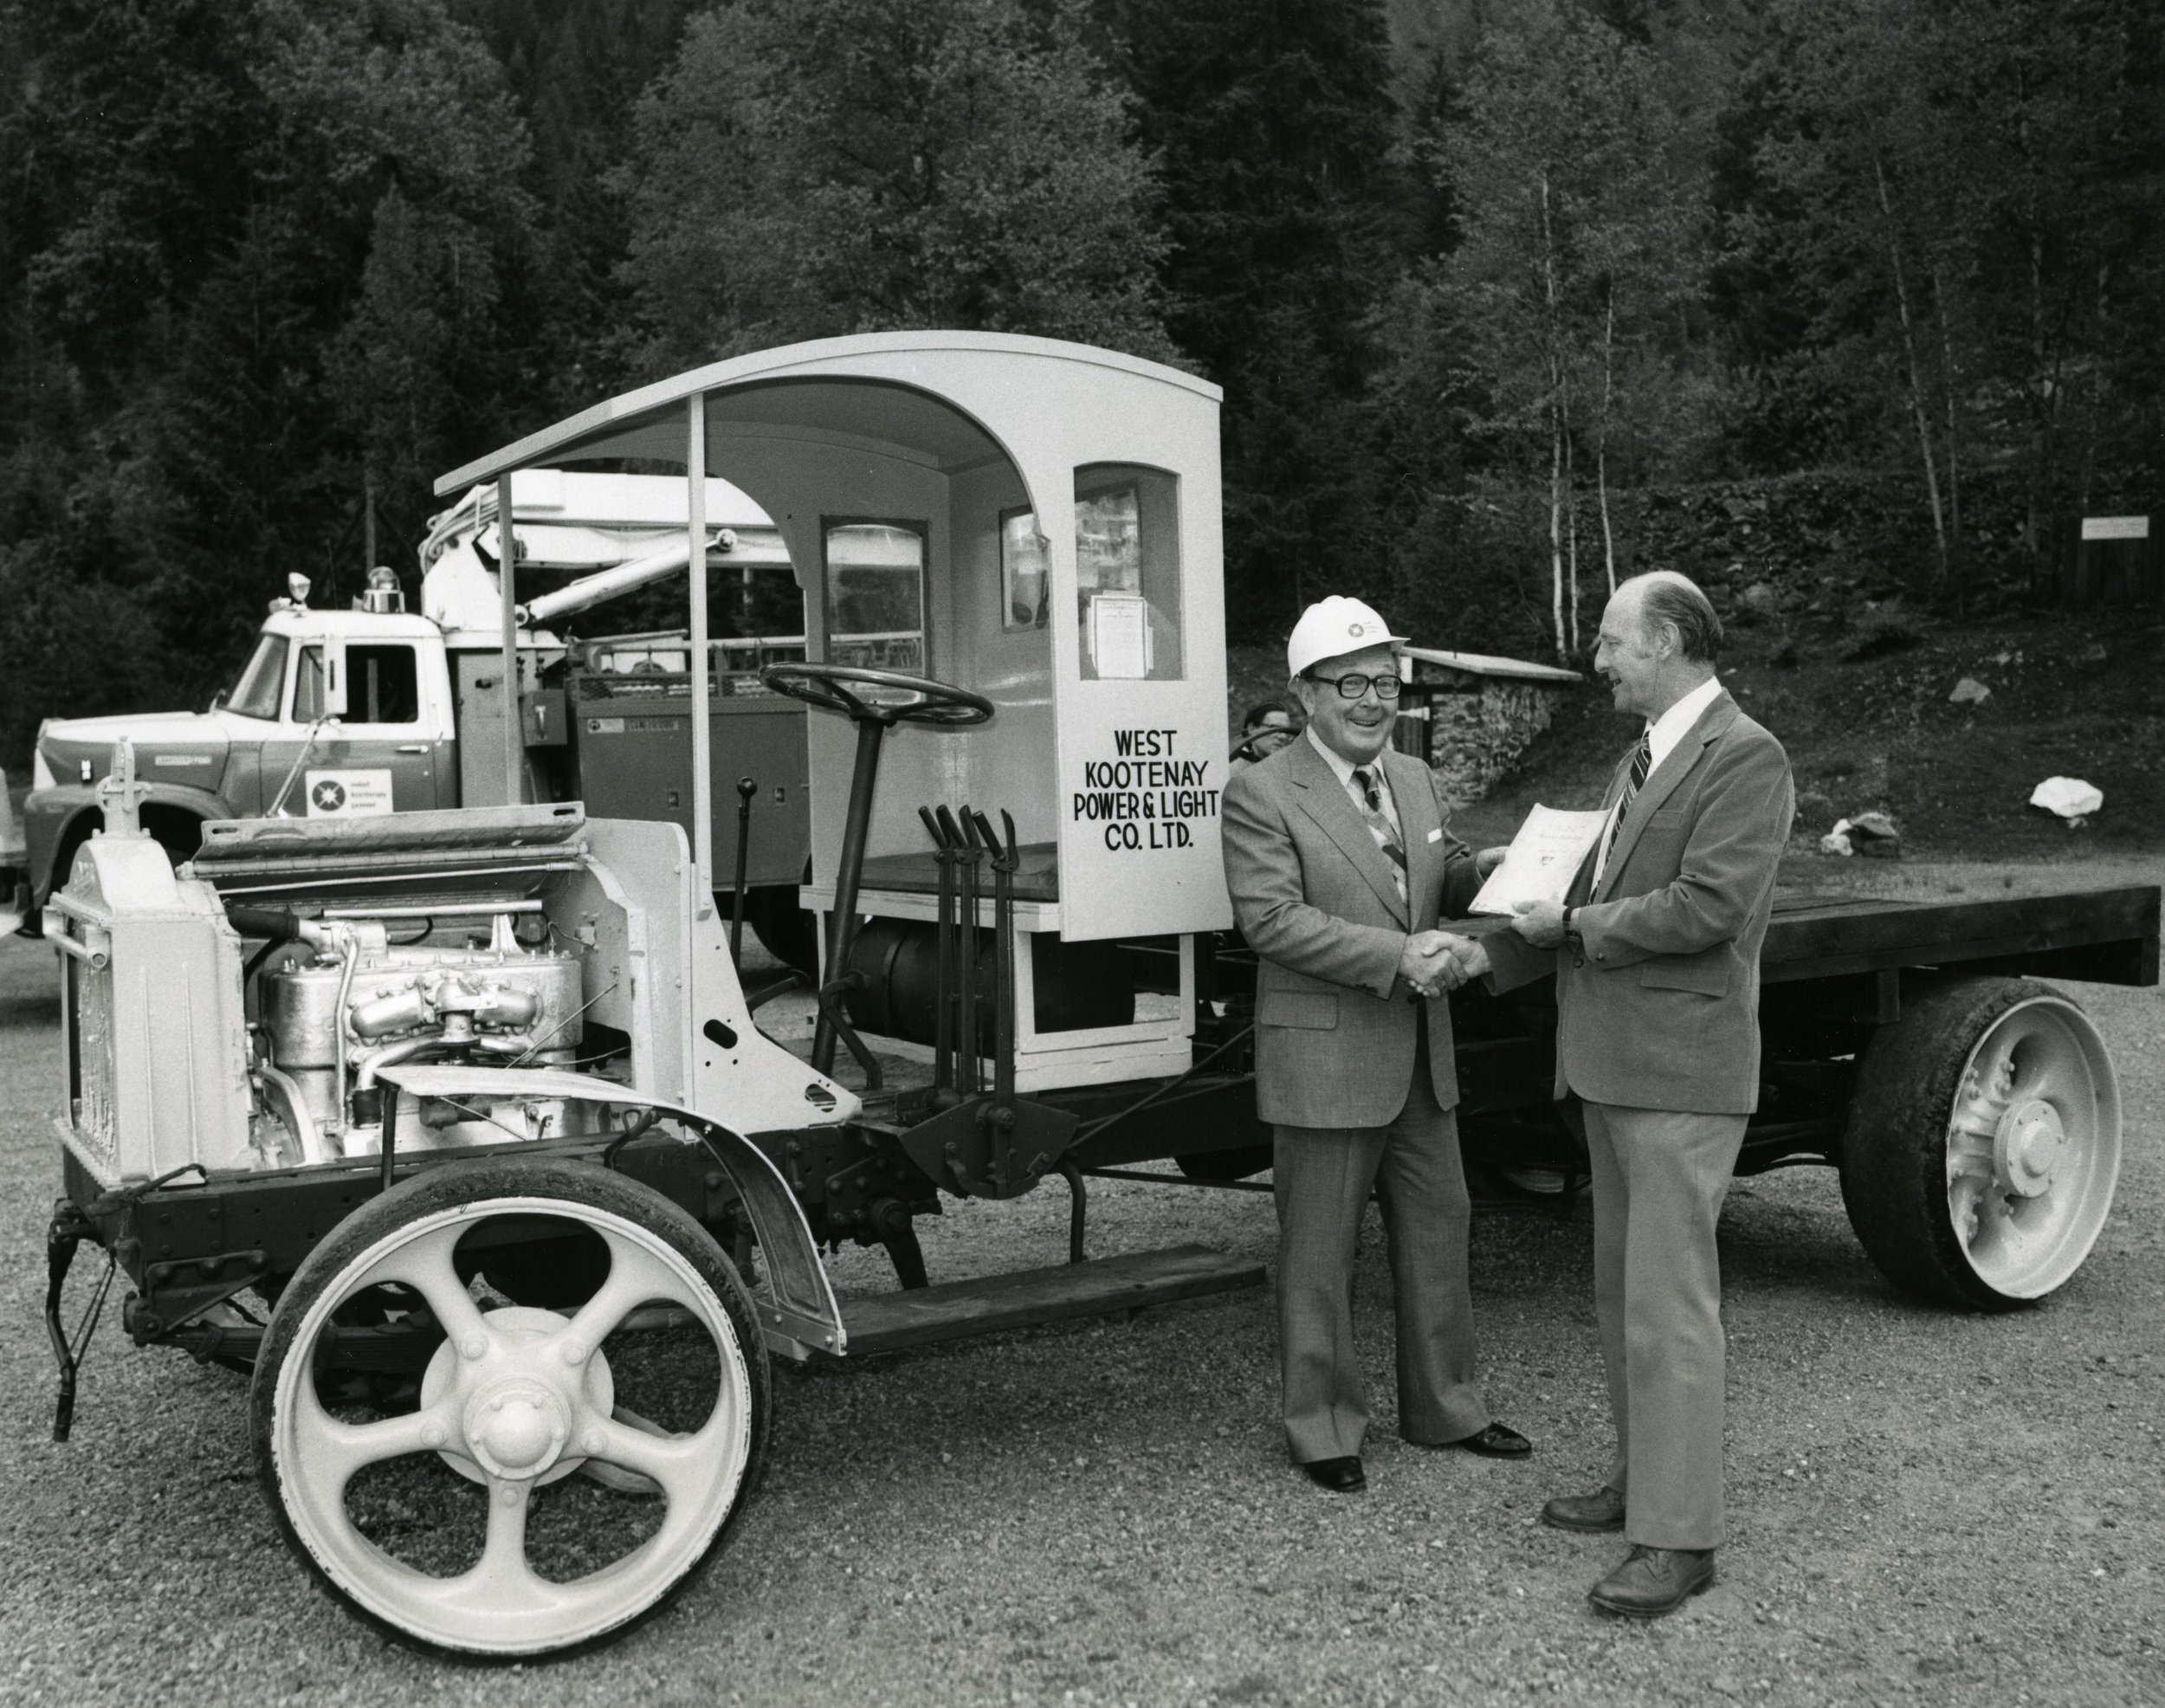 Photo 2276.0179 - not in BI: The presentation of the West Kootenay Power & Light's Packard truck to the Rossland Museum, May 27th, 1976. Pictured on left is F.E. Burnet, the Chairman of the WKP&L board, and on right is J. McDonald, President of the Rossland Historical Museum.